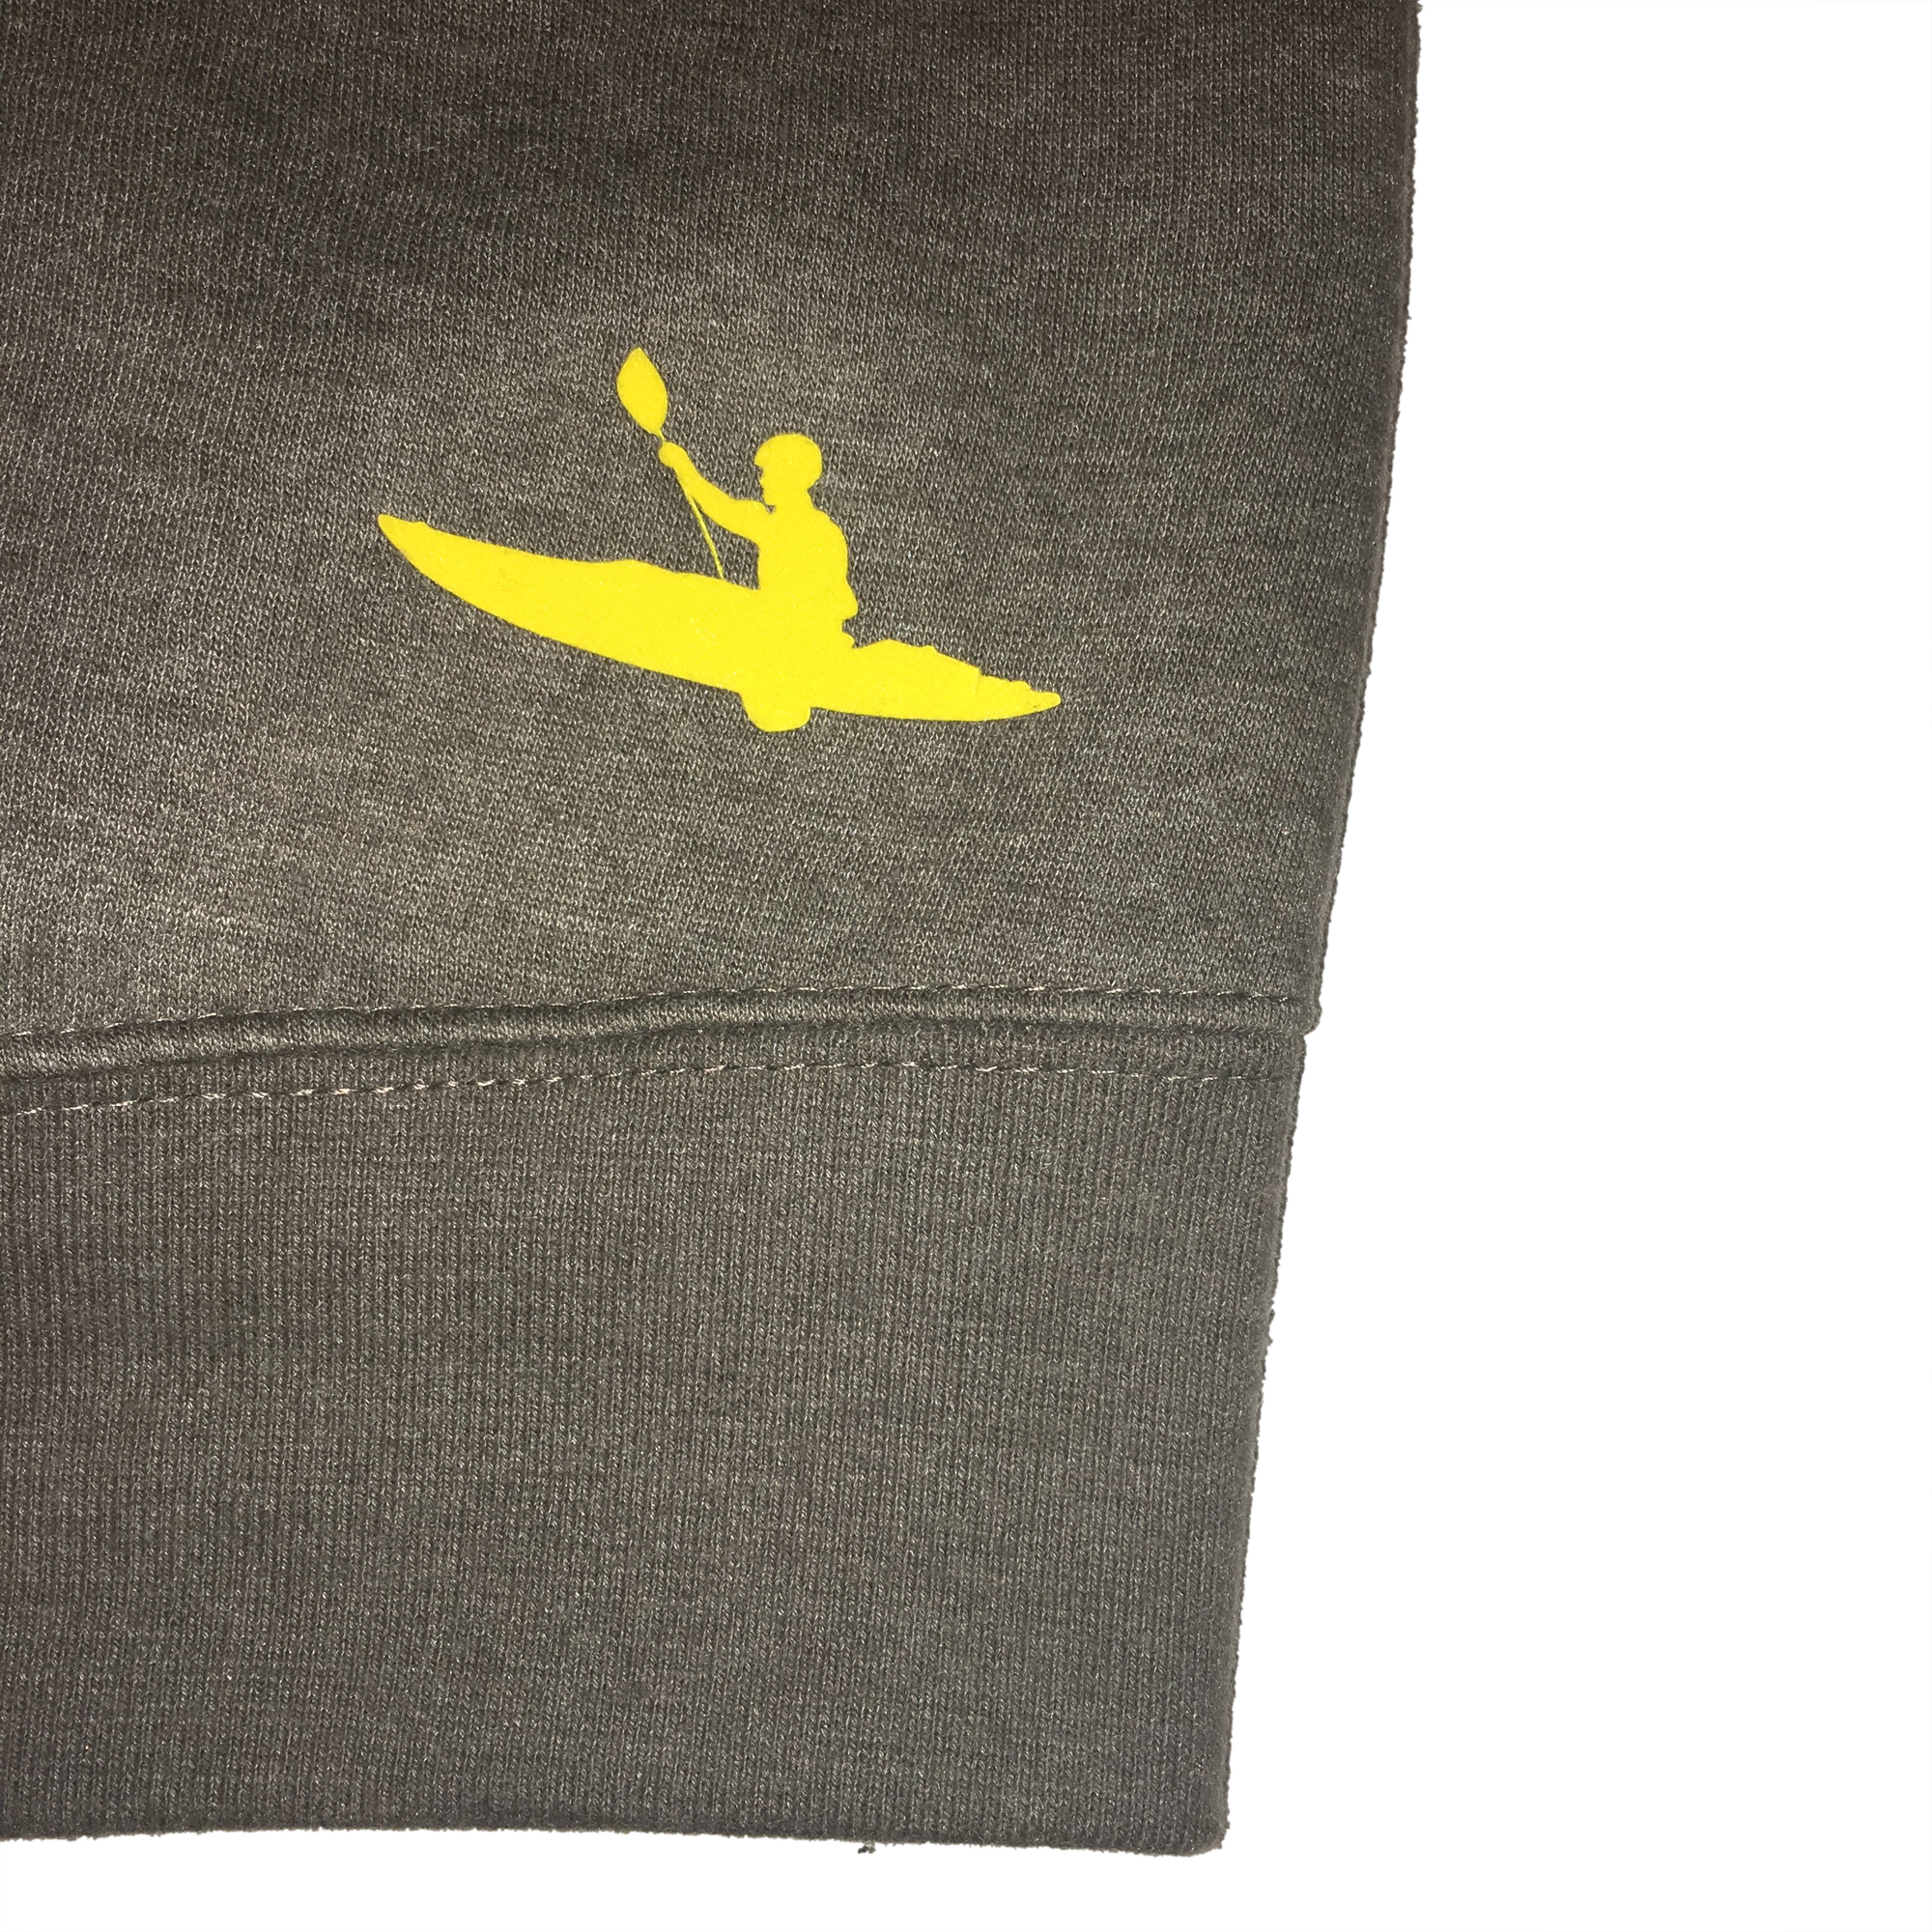 Kayaker Icon on rear hemline